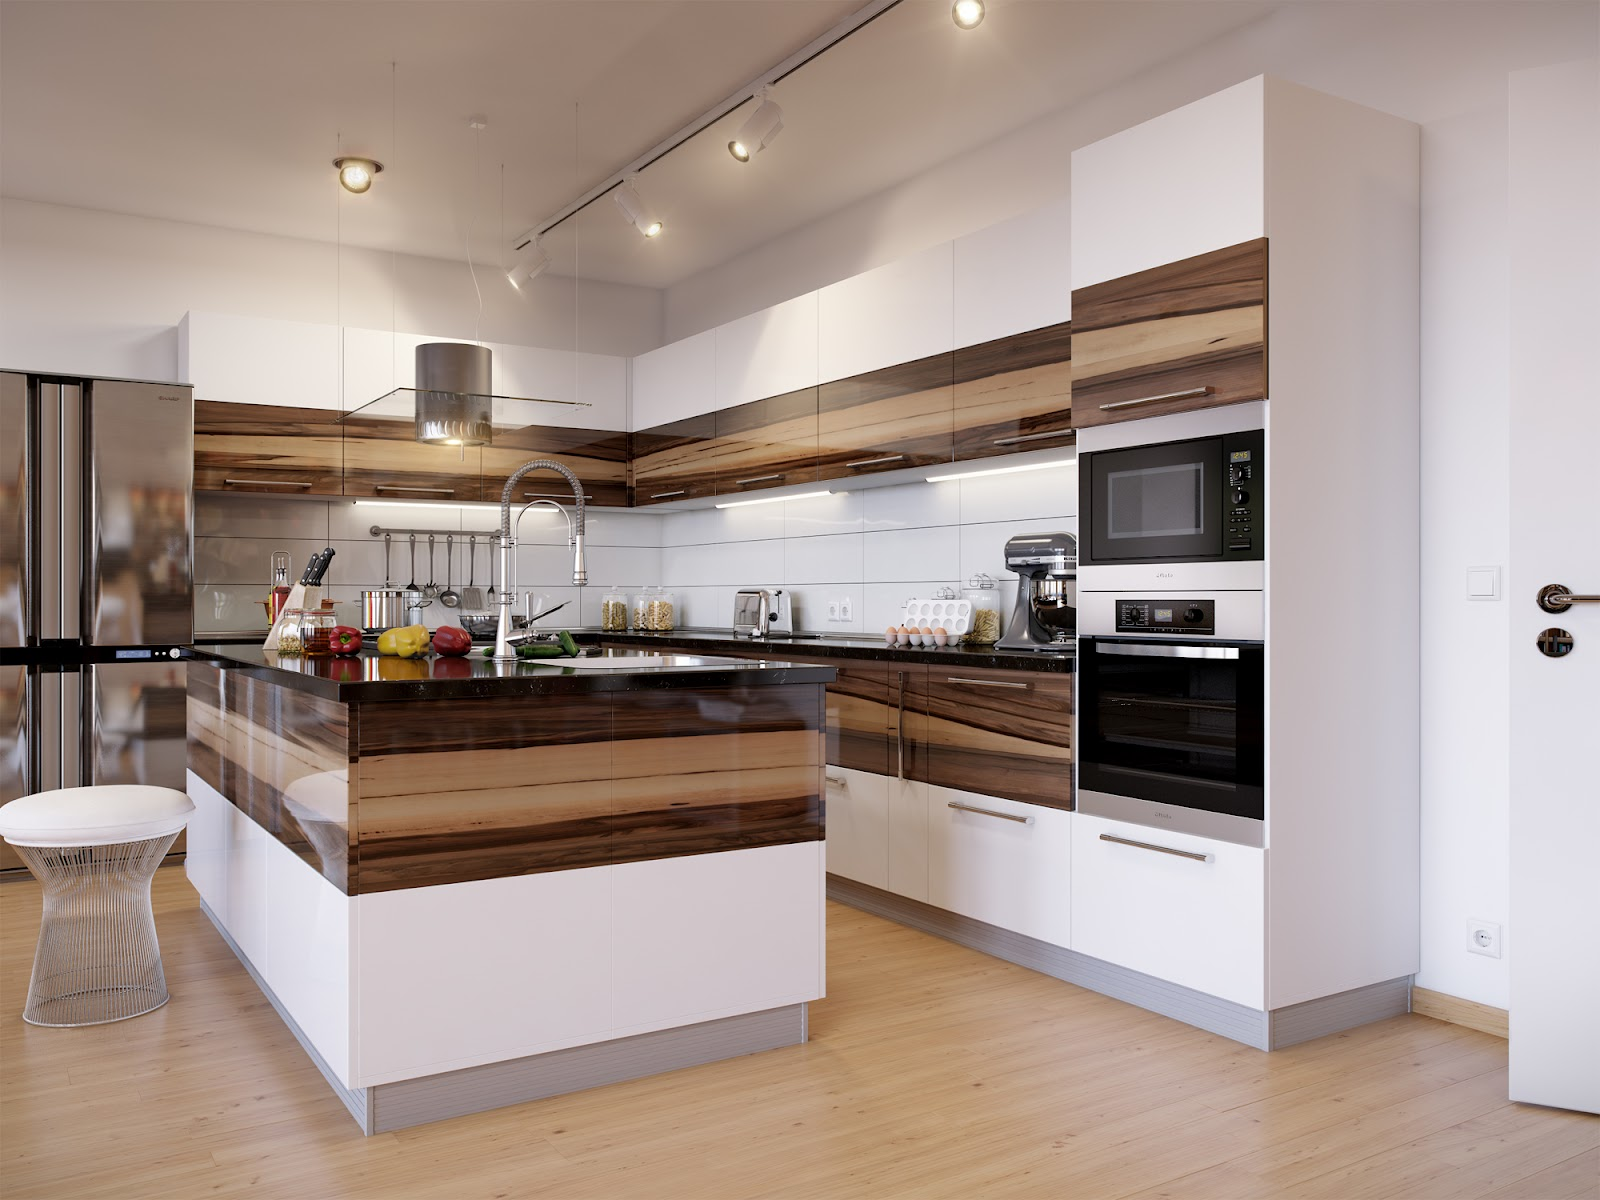 View In Gallery Dekorasi Ruang Dan Kabinet Dapur Terkini English Style